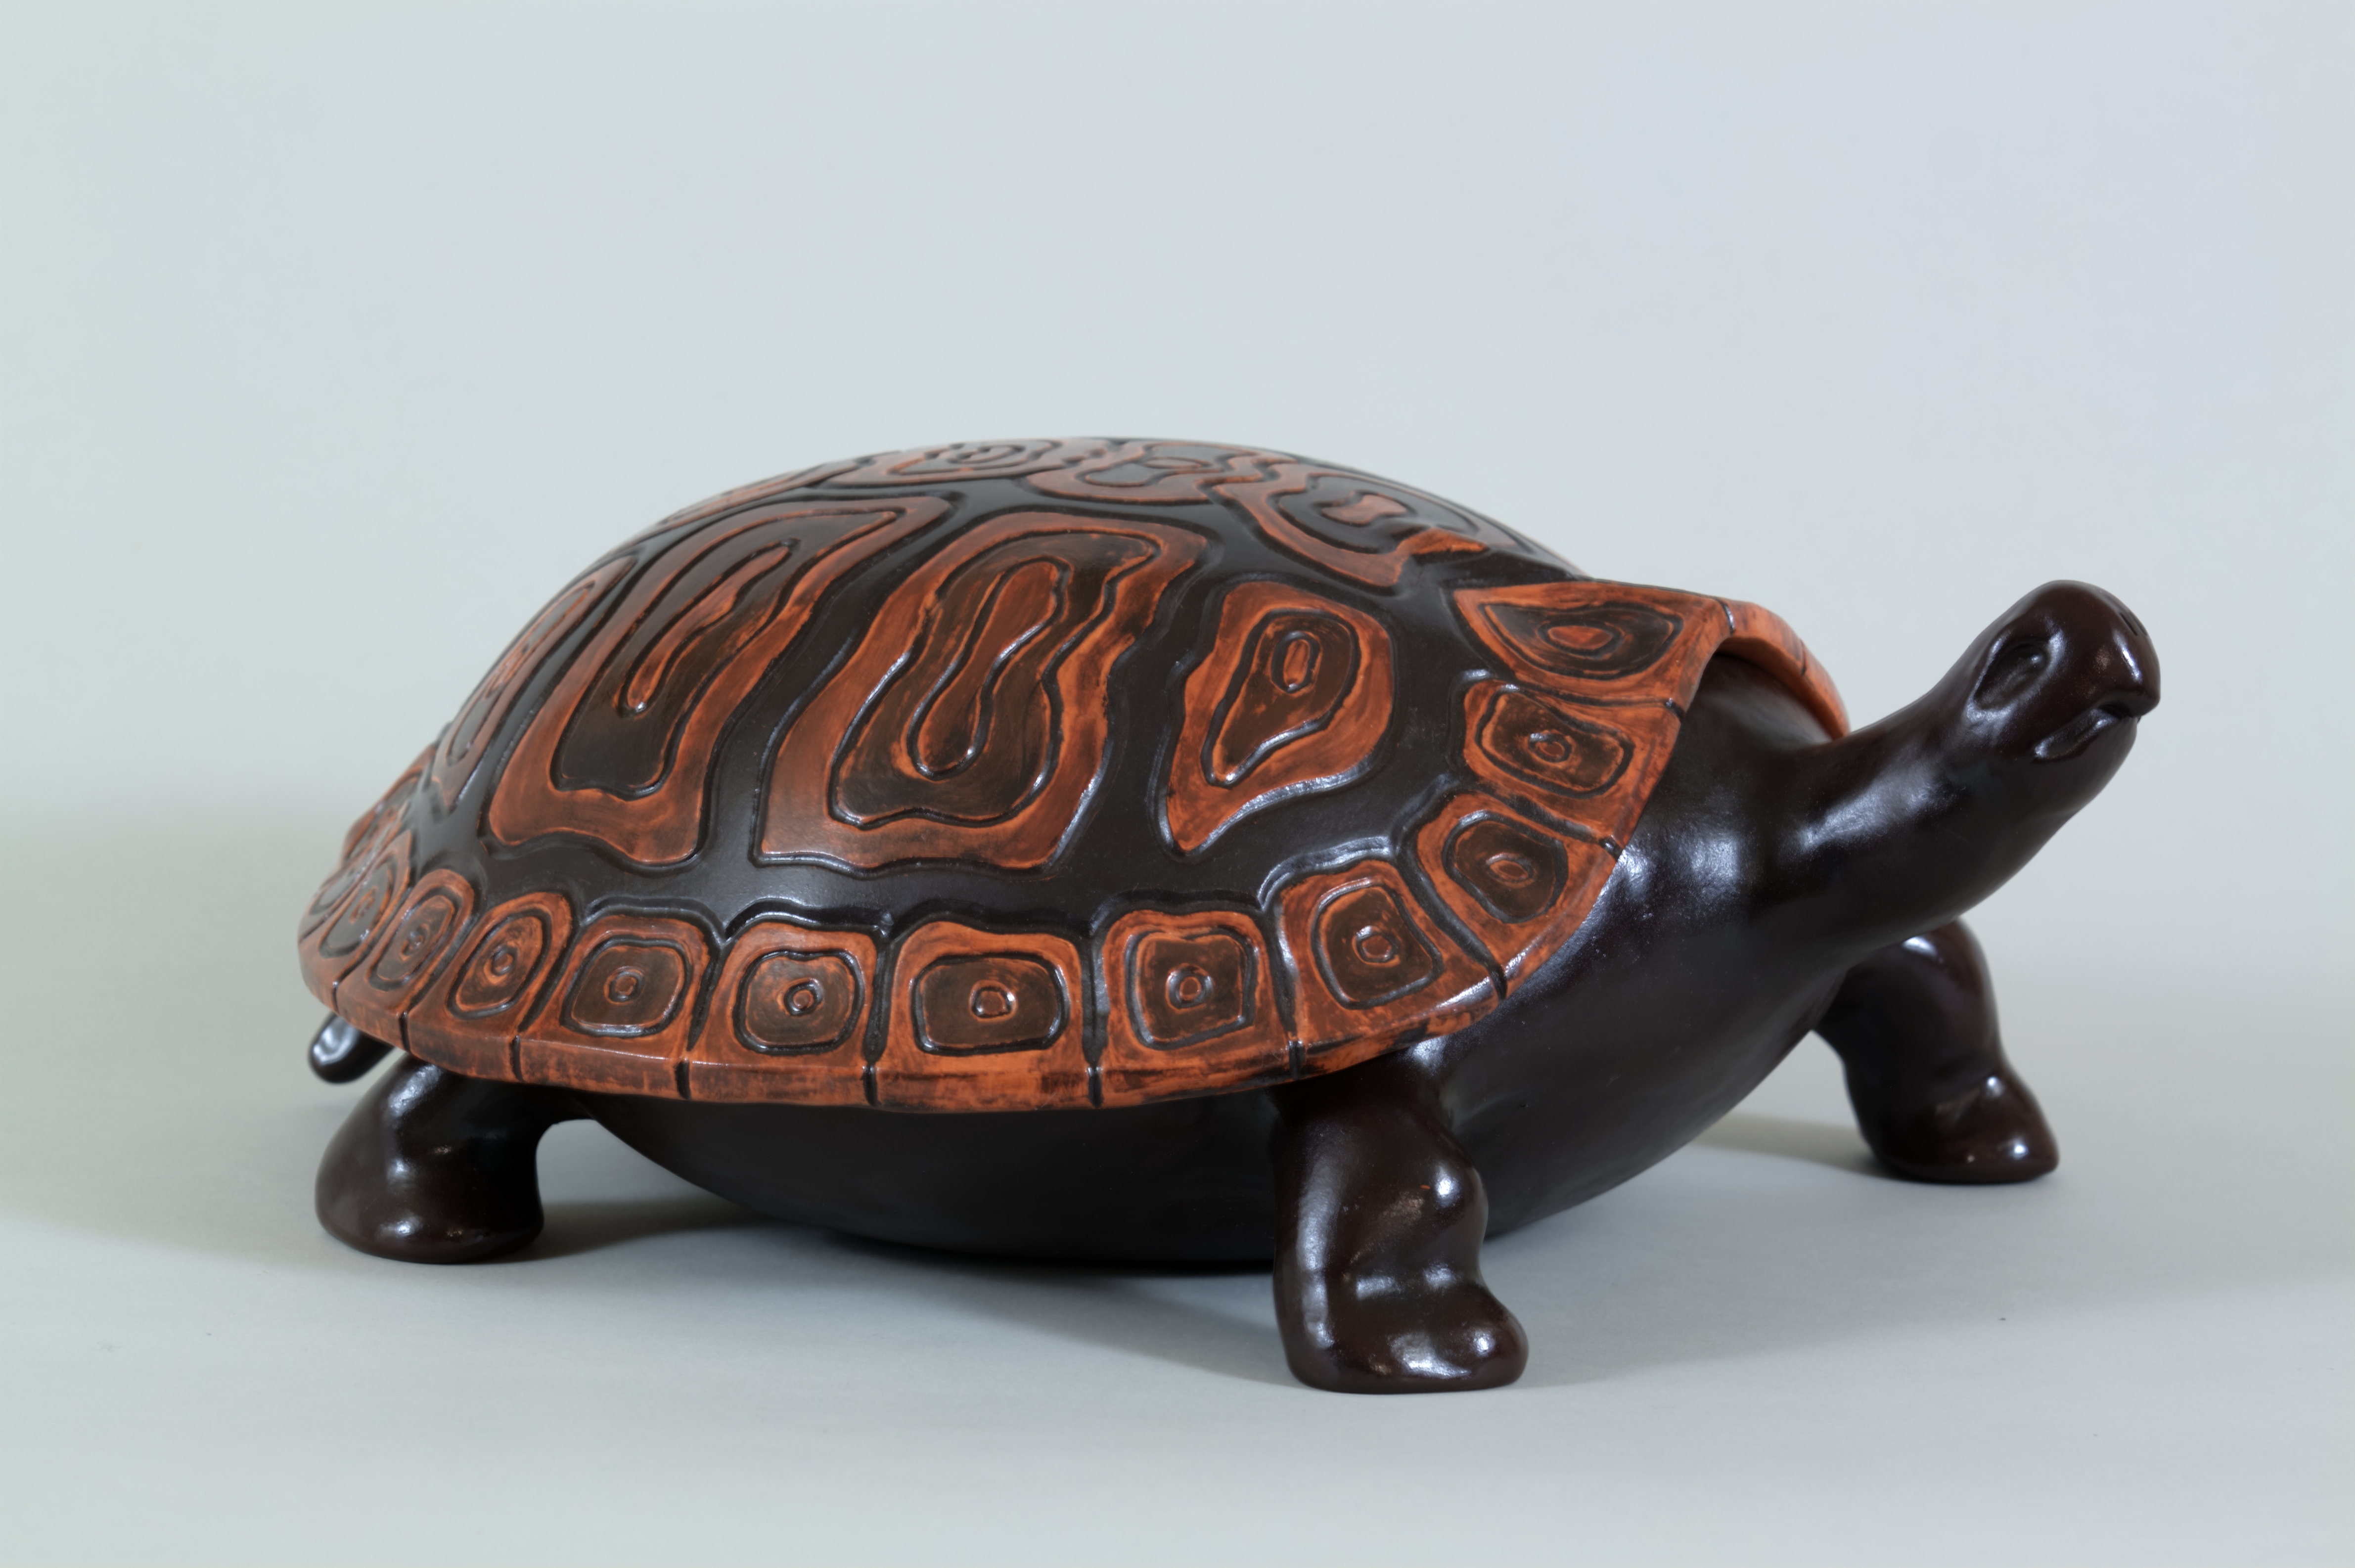 046_Turtle with removable shell